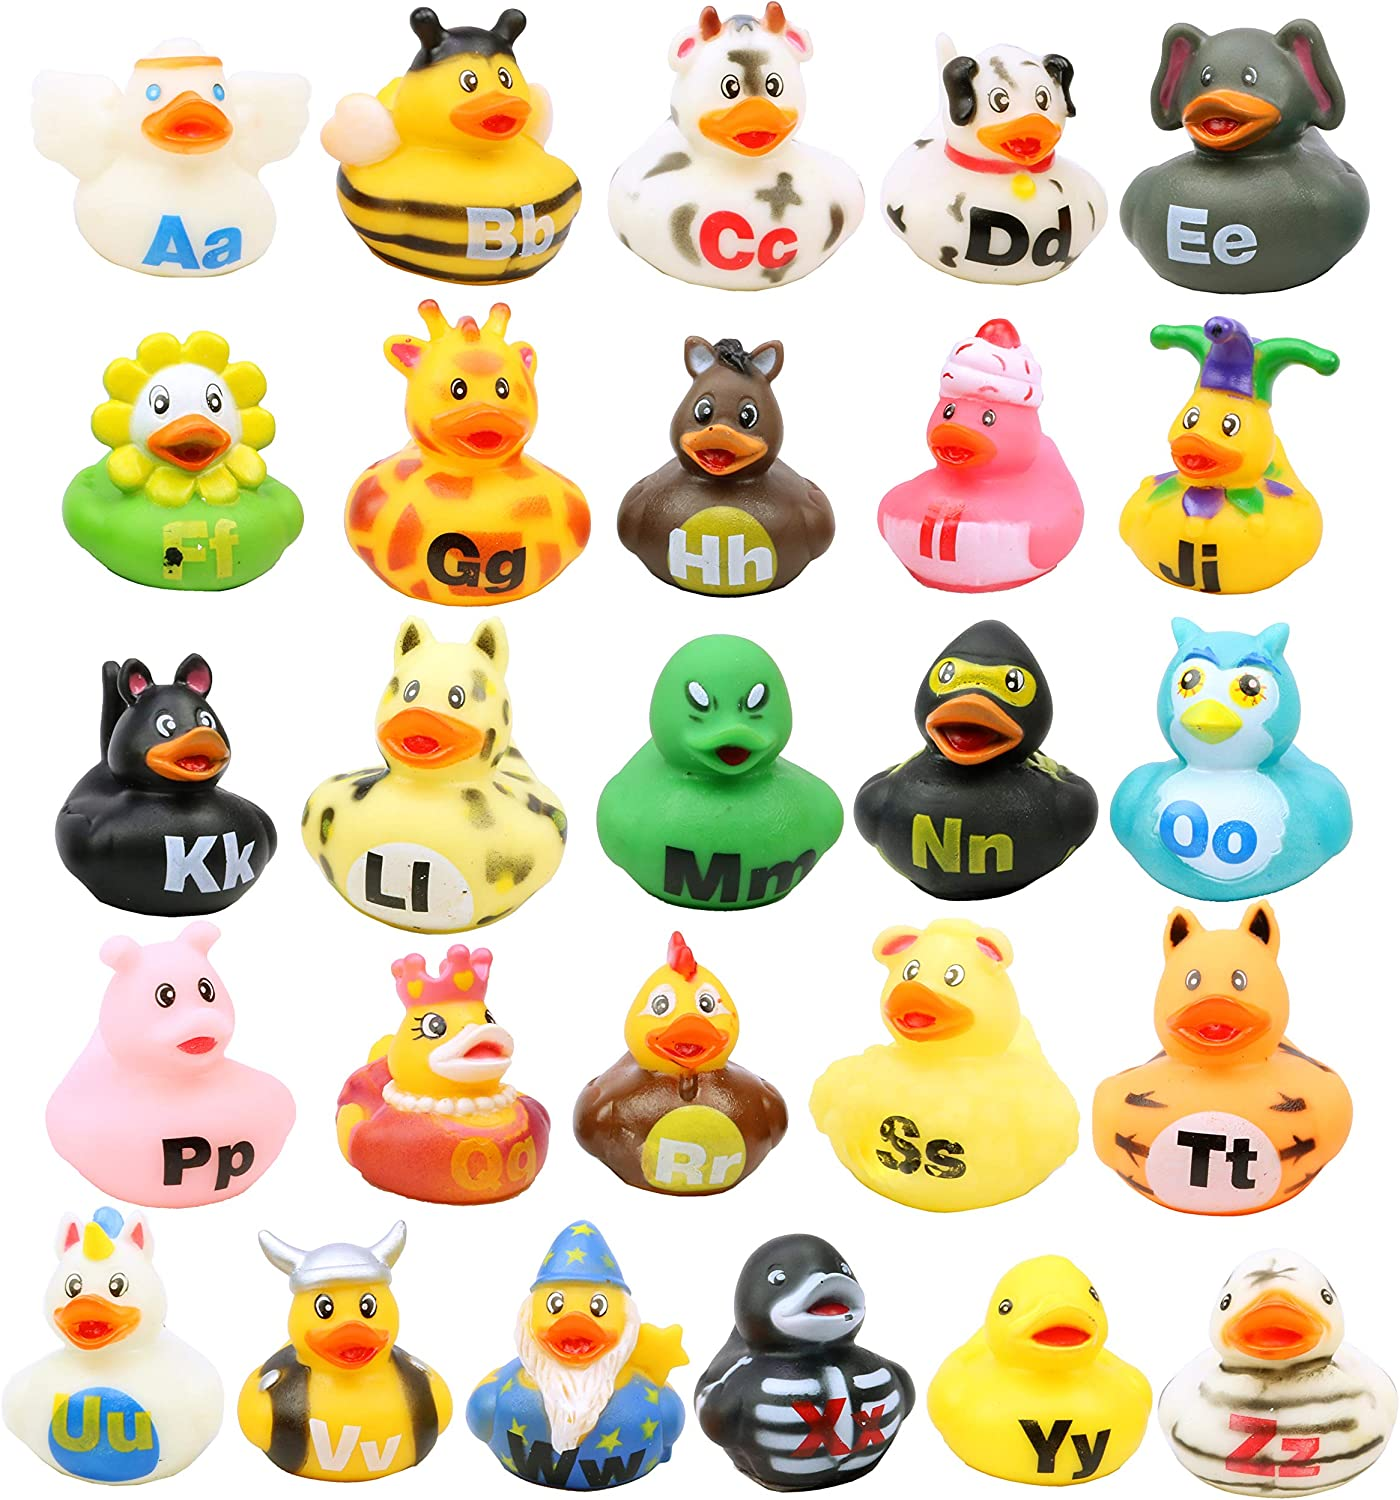 26 Pack Rubber Duckies Educational Childrens Learning Activities ABC Rubber Duckies for Kids and Toddlers SN Incorp Mini Bath Toys Ducky Gifts Alphabet Rubber Ducks